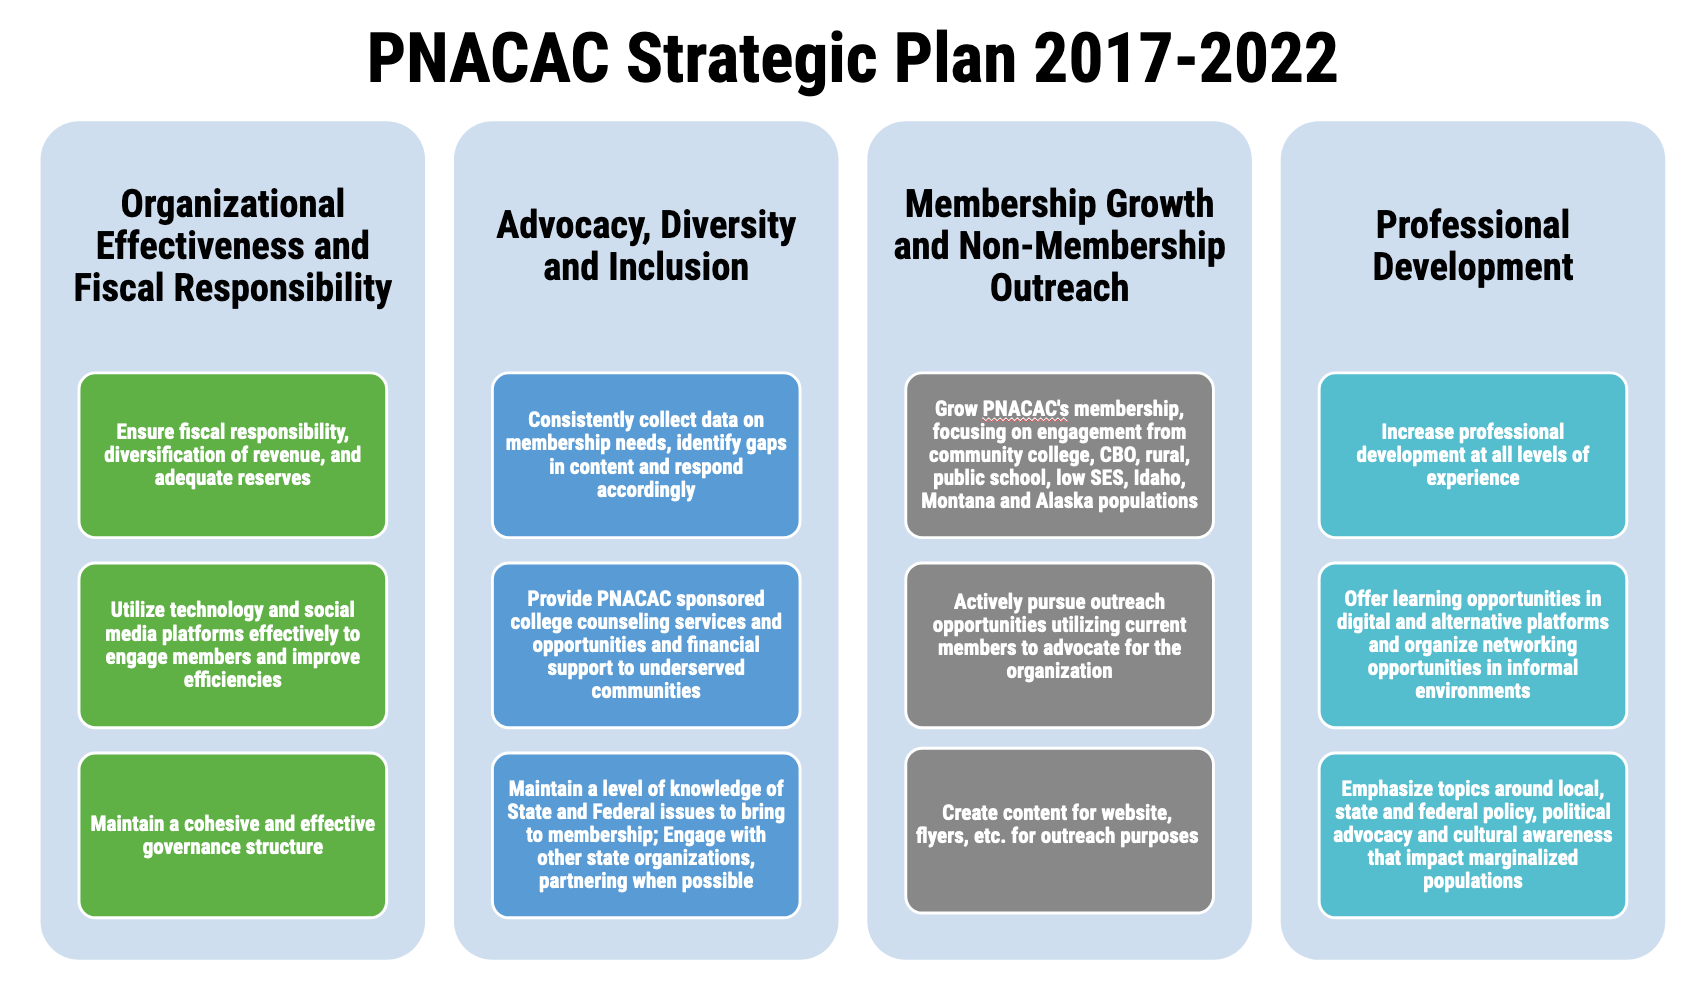 PNACAC strategic plan image